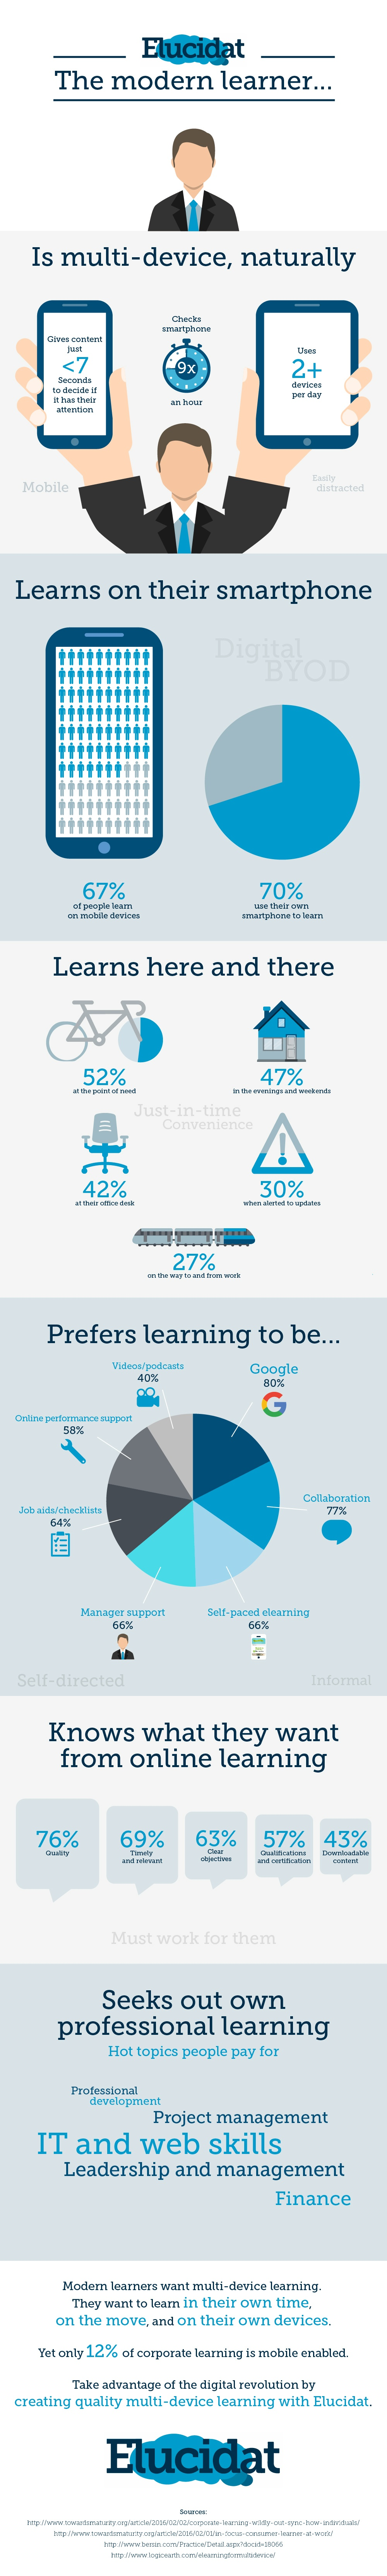 Profile of the Modern Learner Infographic